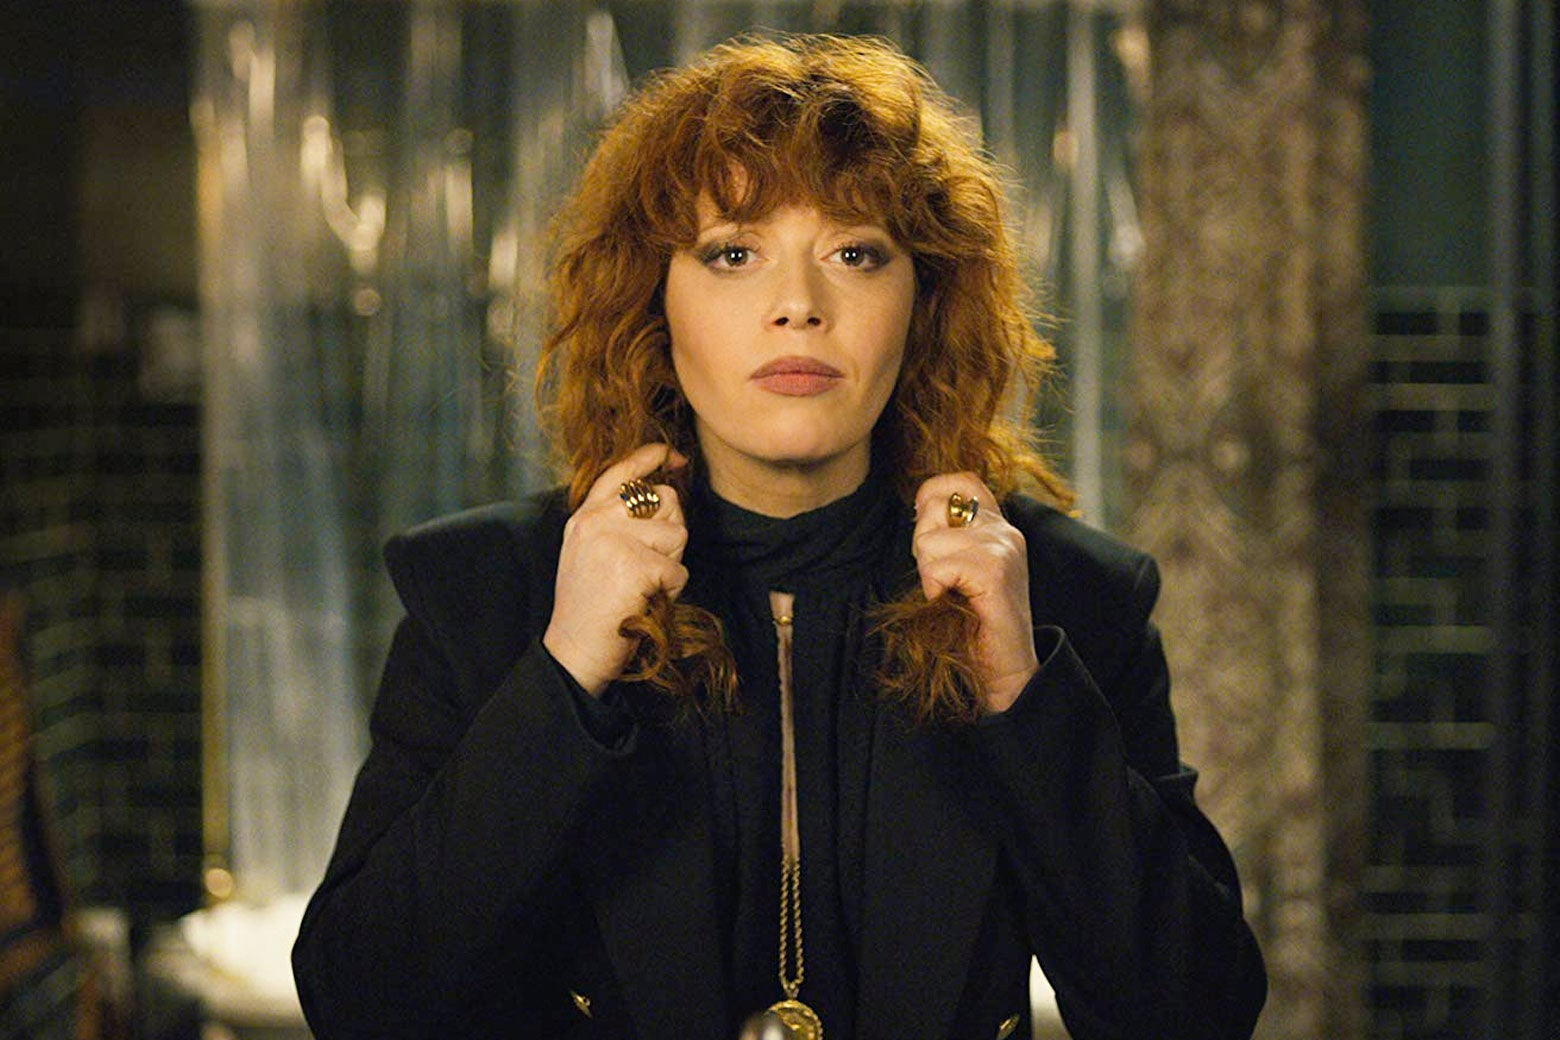 Still from Russian Doll: Nadia, played by Natasha Lyonne, grabs fistfuls of her long red hair.